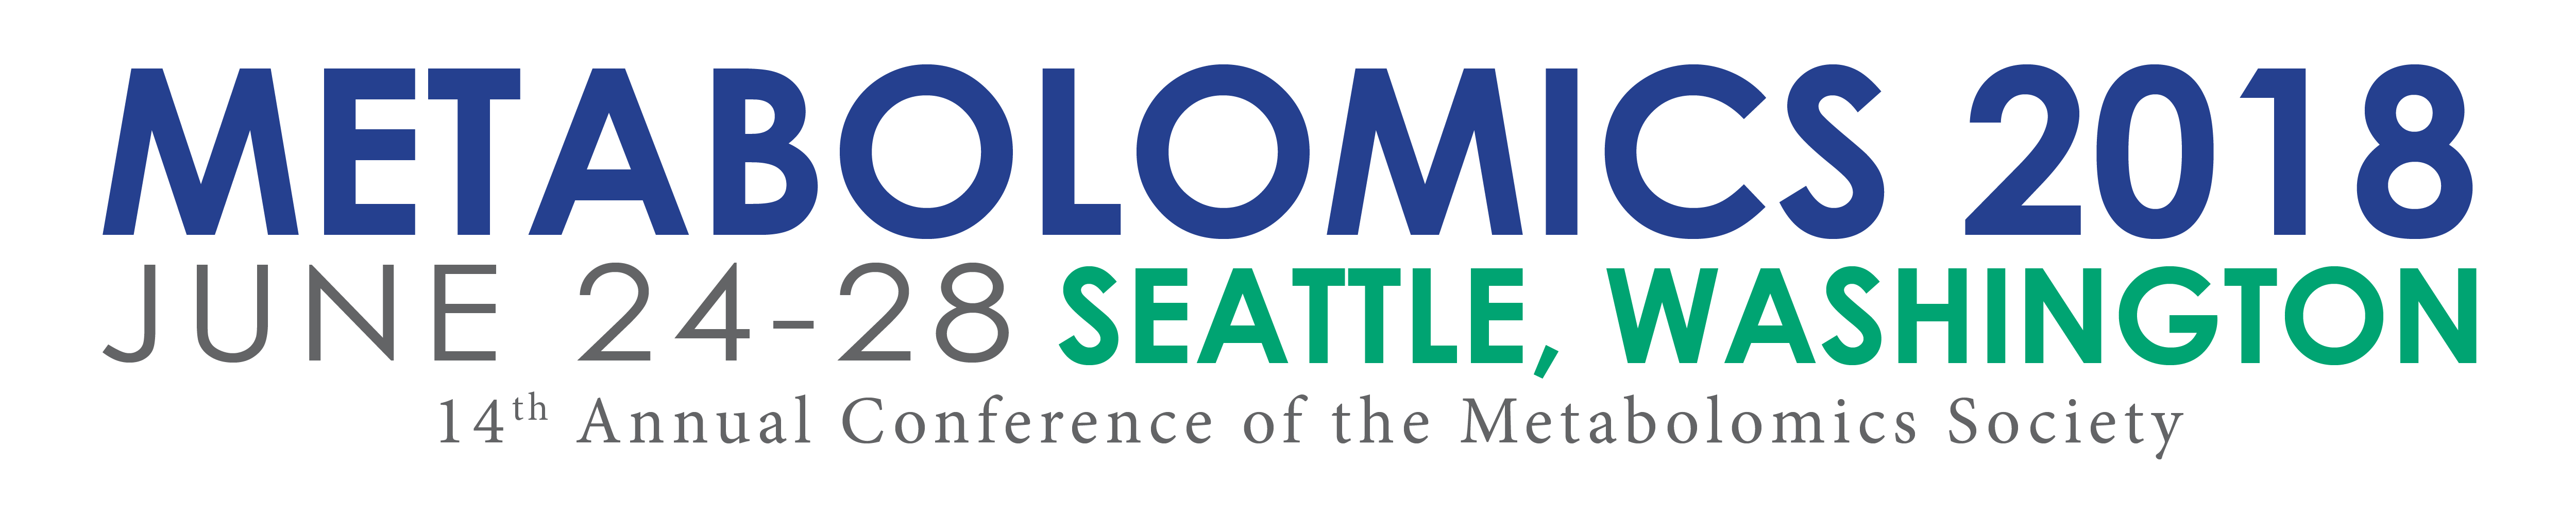 2018 Metabolomics Conference